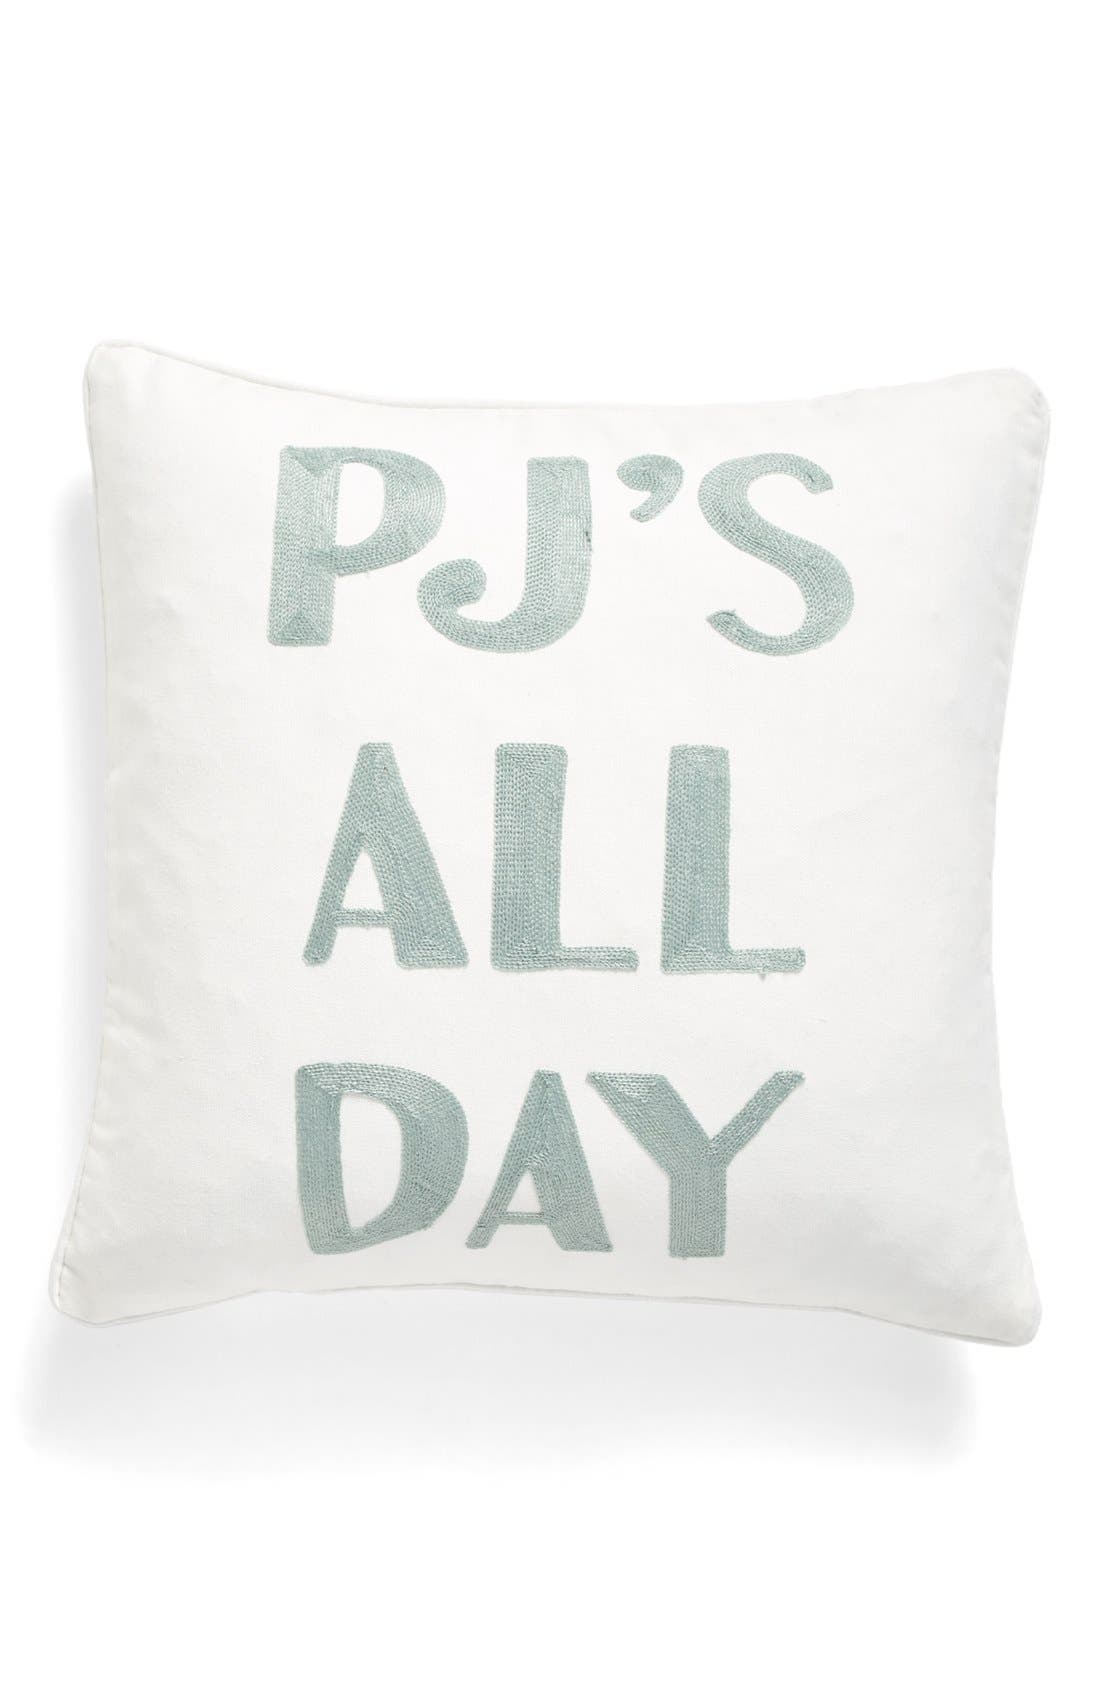 Alternate Image 1 Selected - Levtex PJs All Day Accent Pillow